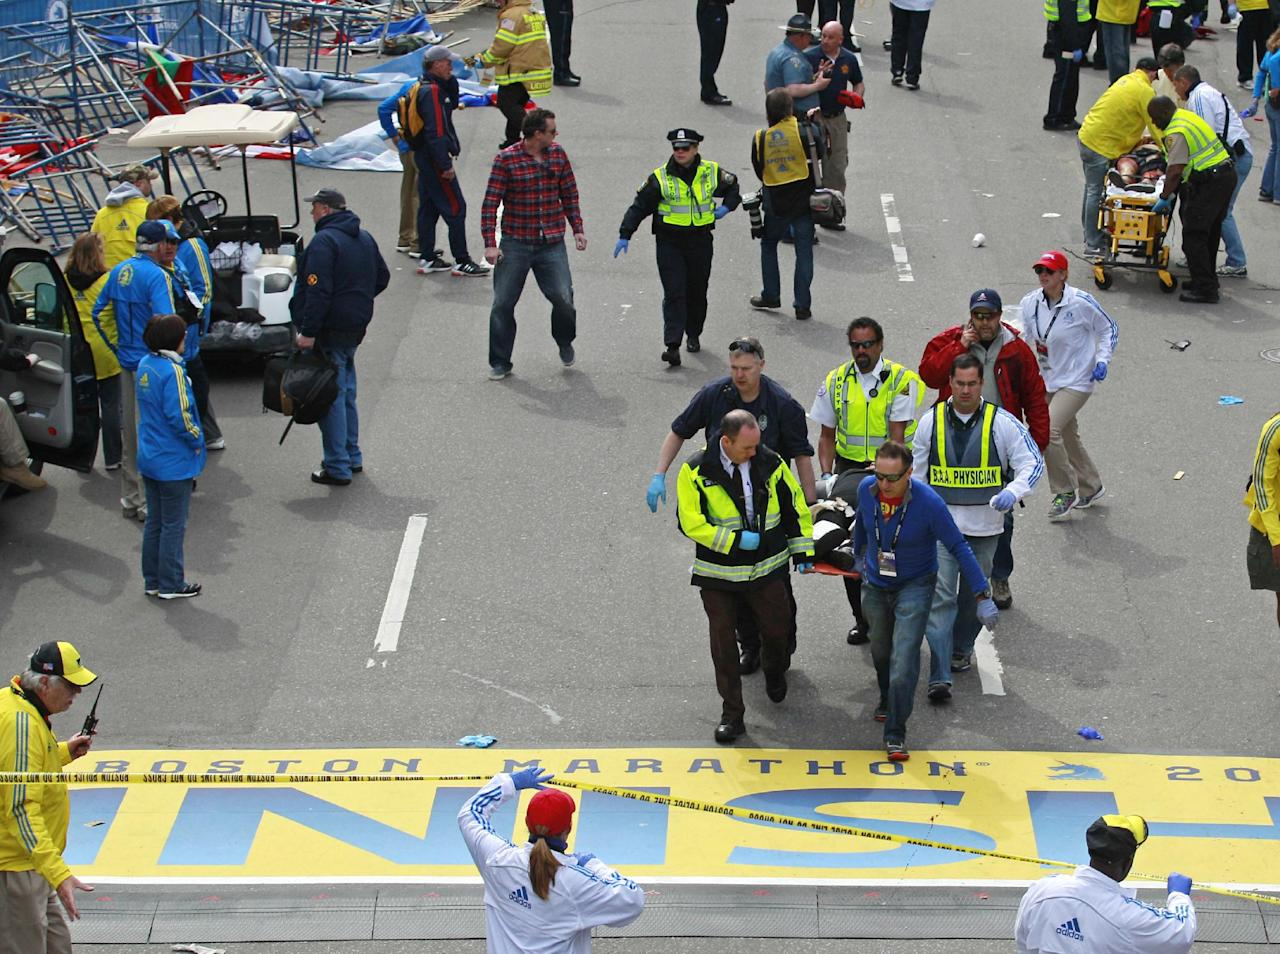 Medical workers wheel the injured across the finish line during the 2013 Boston Marathon following an explosion in Boston, Monday, April 15, 2013. Two explosions shattered the euphoria of the Boston Marathon finish line on Monday, sending authorities out on the course to carry off the injured while the stragglers were rerouted away from the smoking site of the blasts. (AP Photo/Charles Krupa)